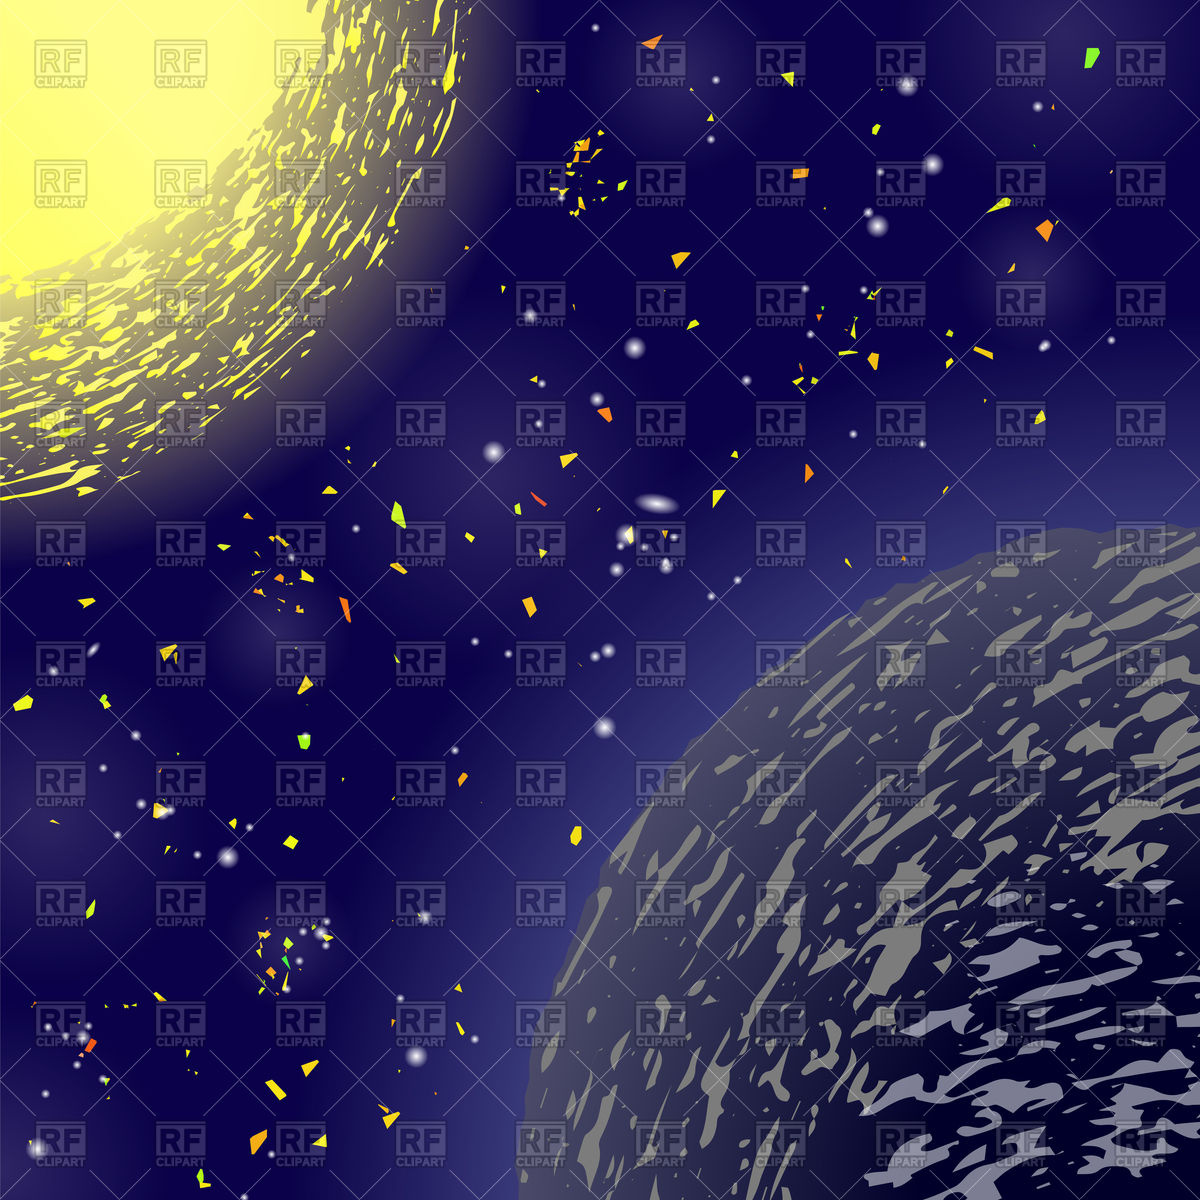 Space Clipart Background.